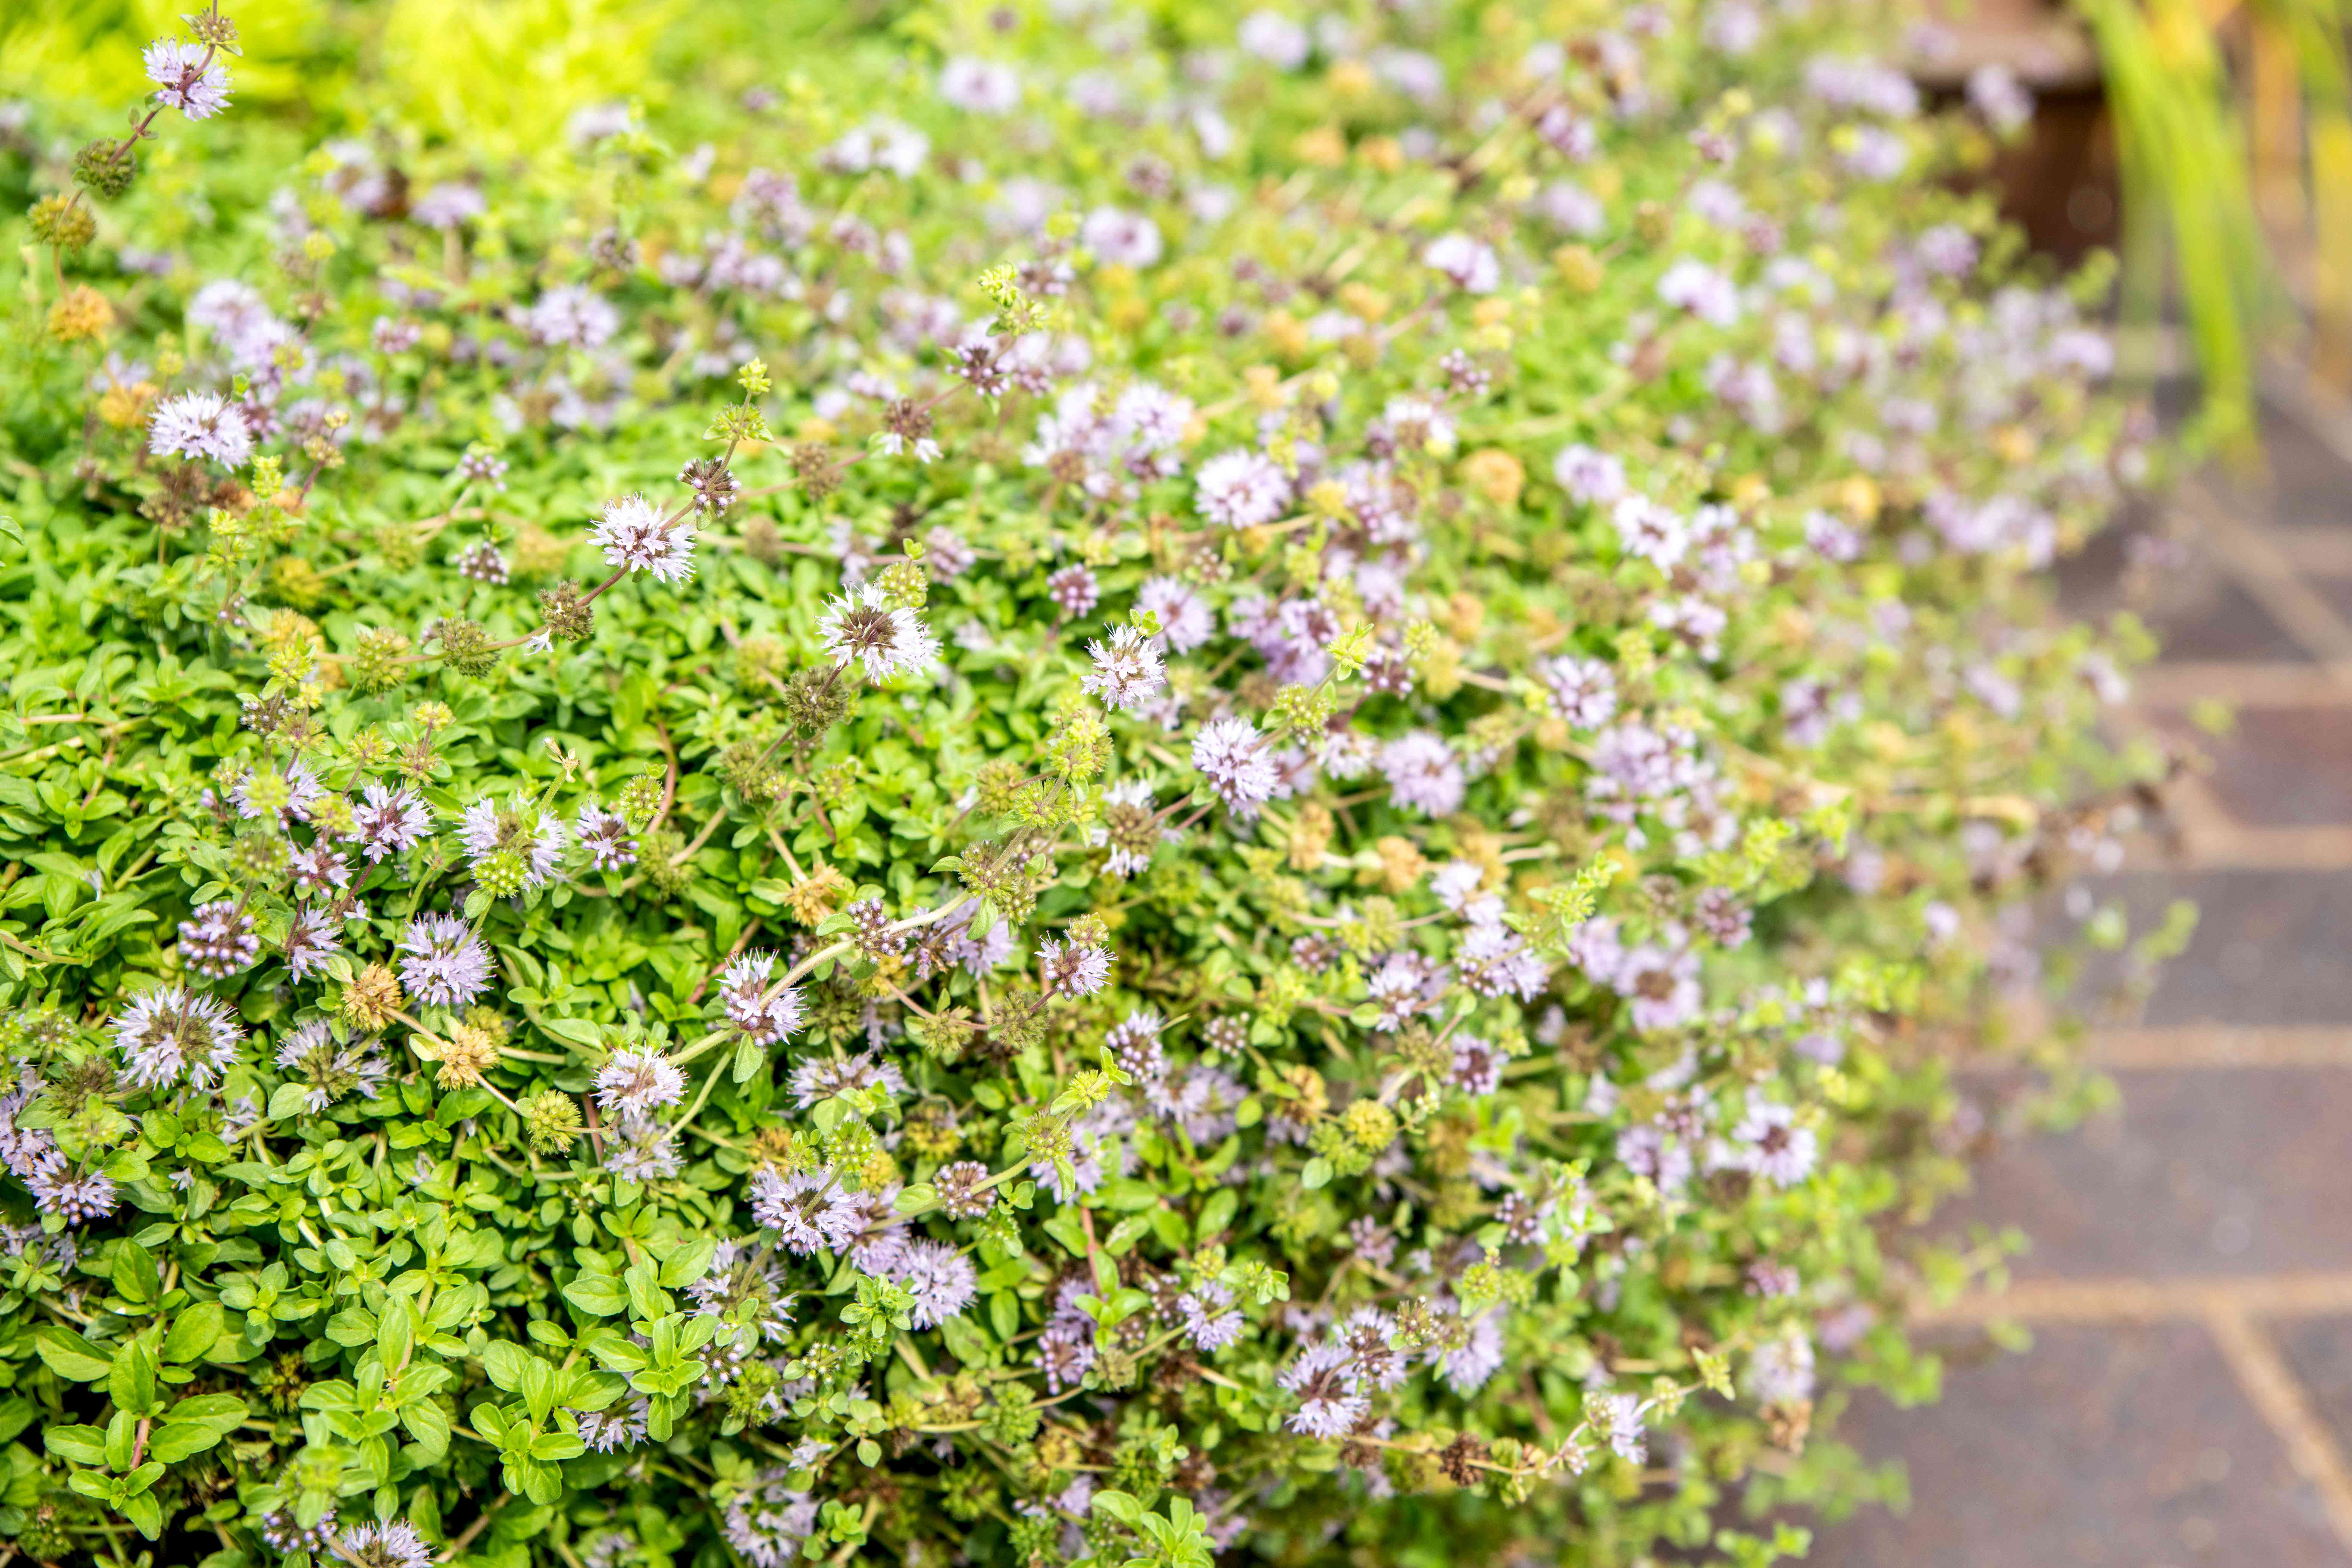 Pennyroyal plant with vibrant green leaves tightly packed under tiny purple blooms near pathway